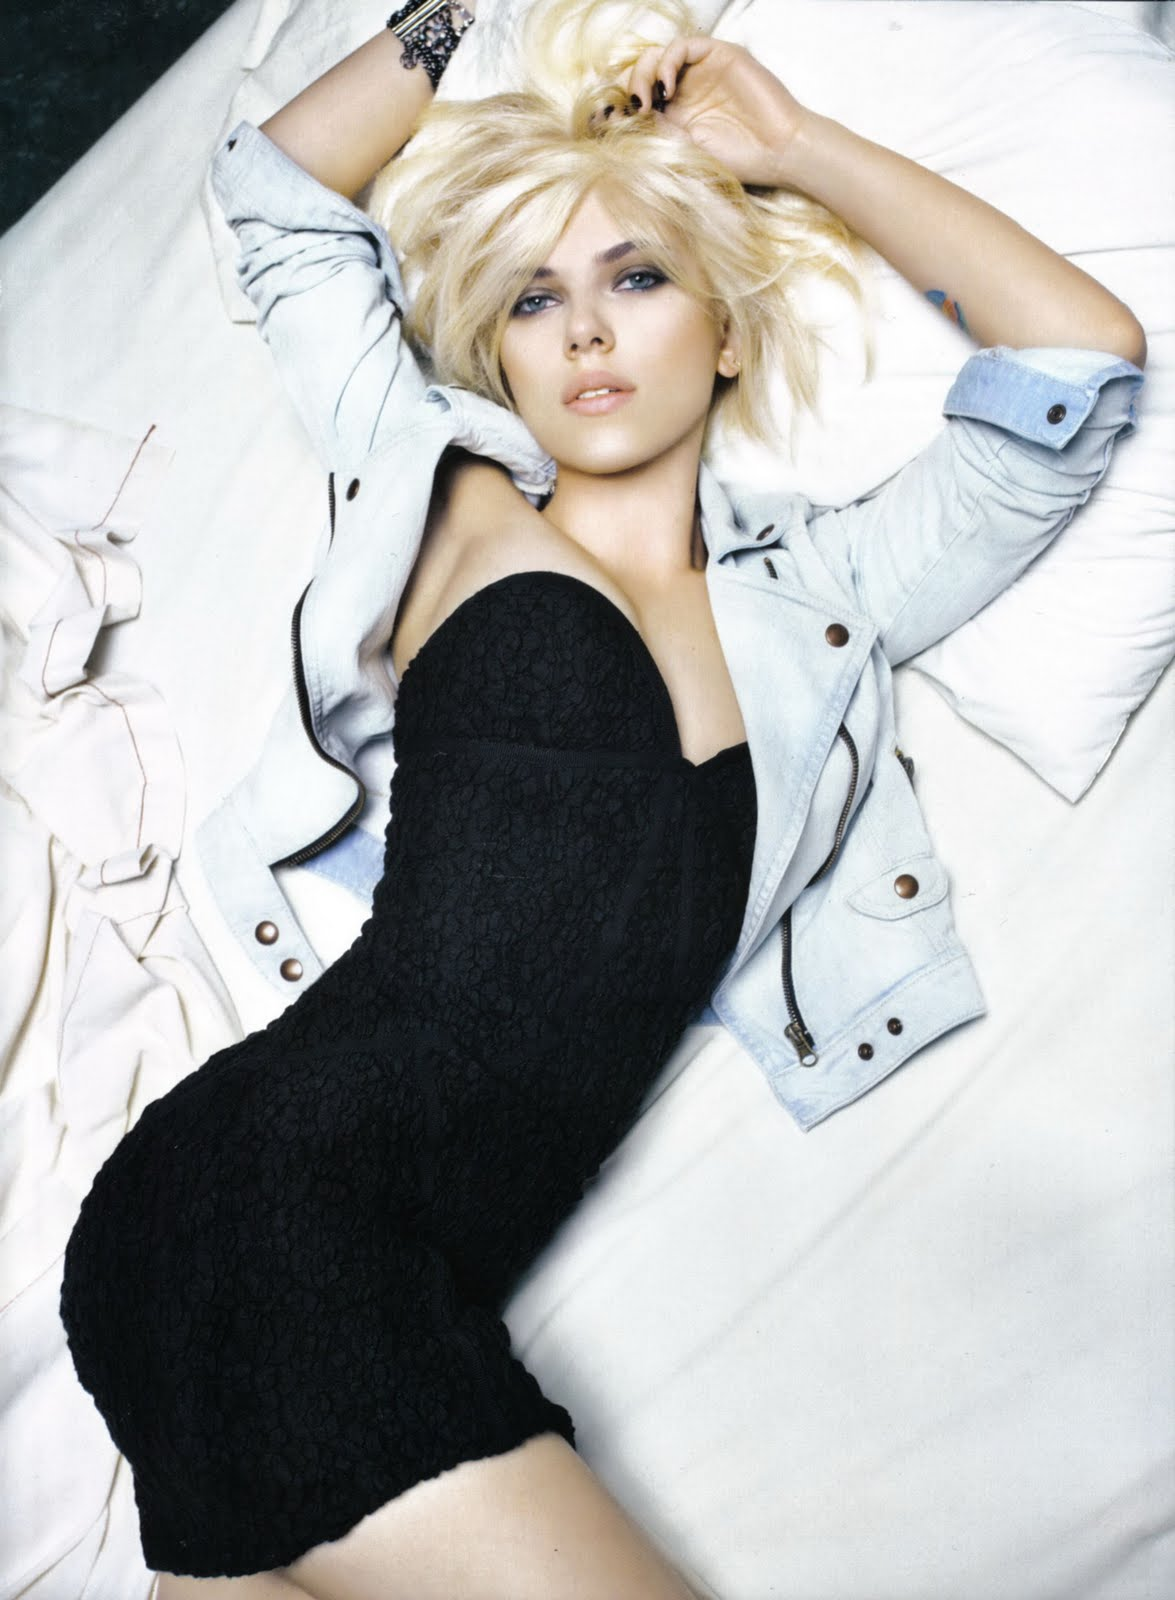 Scarlette Johansson Hot Photoshoot